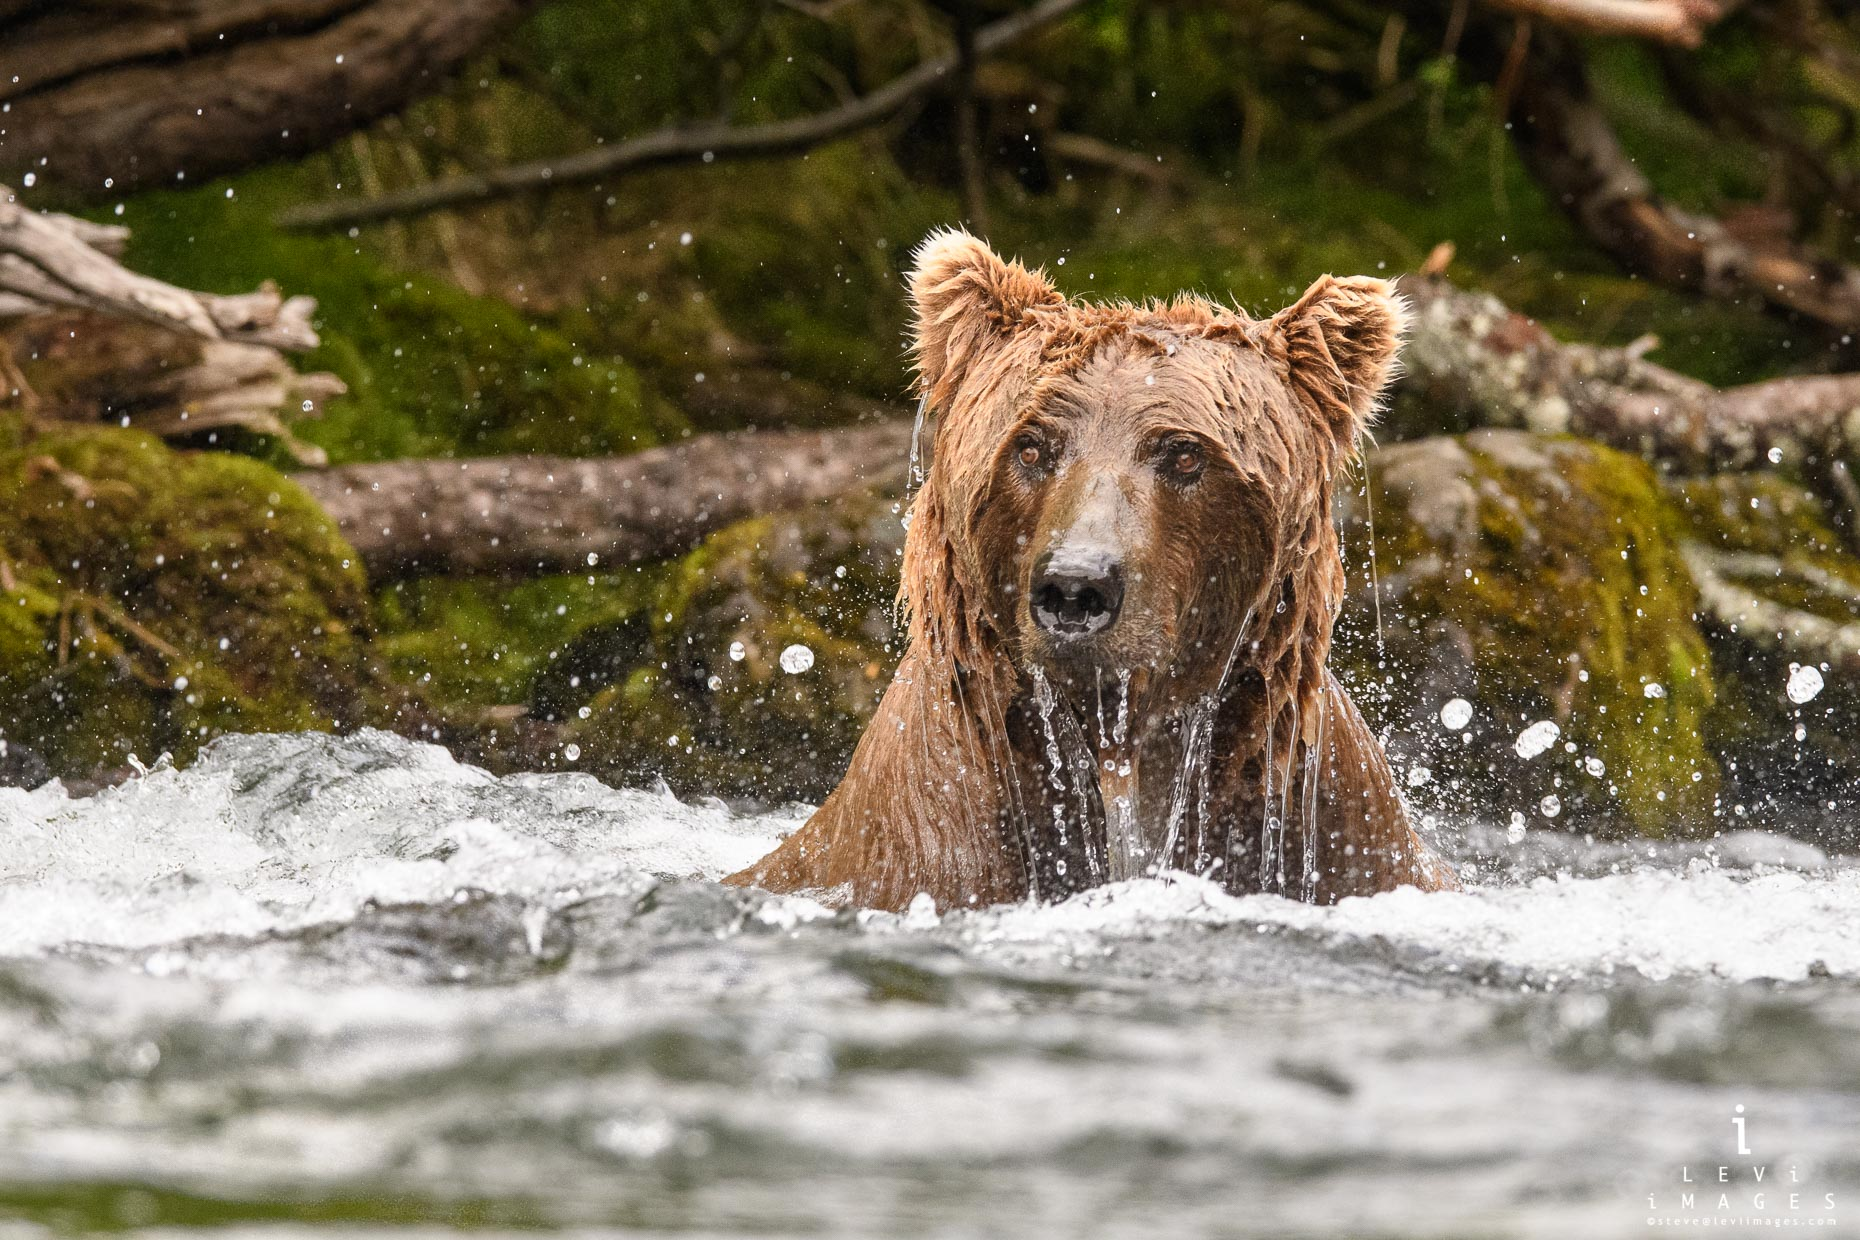 Brown bear (Ursus arctos) in river dripping water. Katmai, Alaska